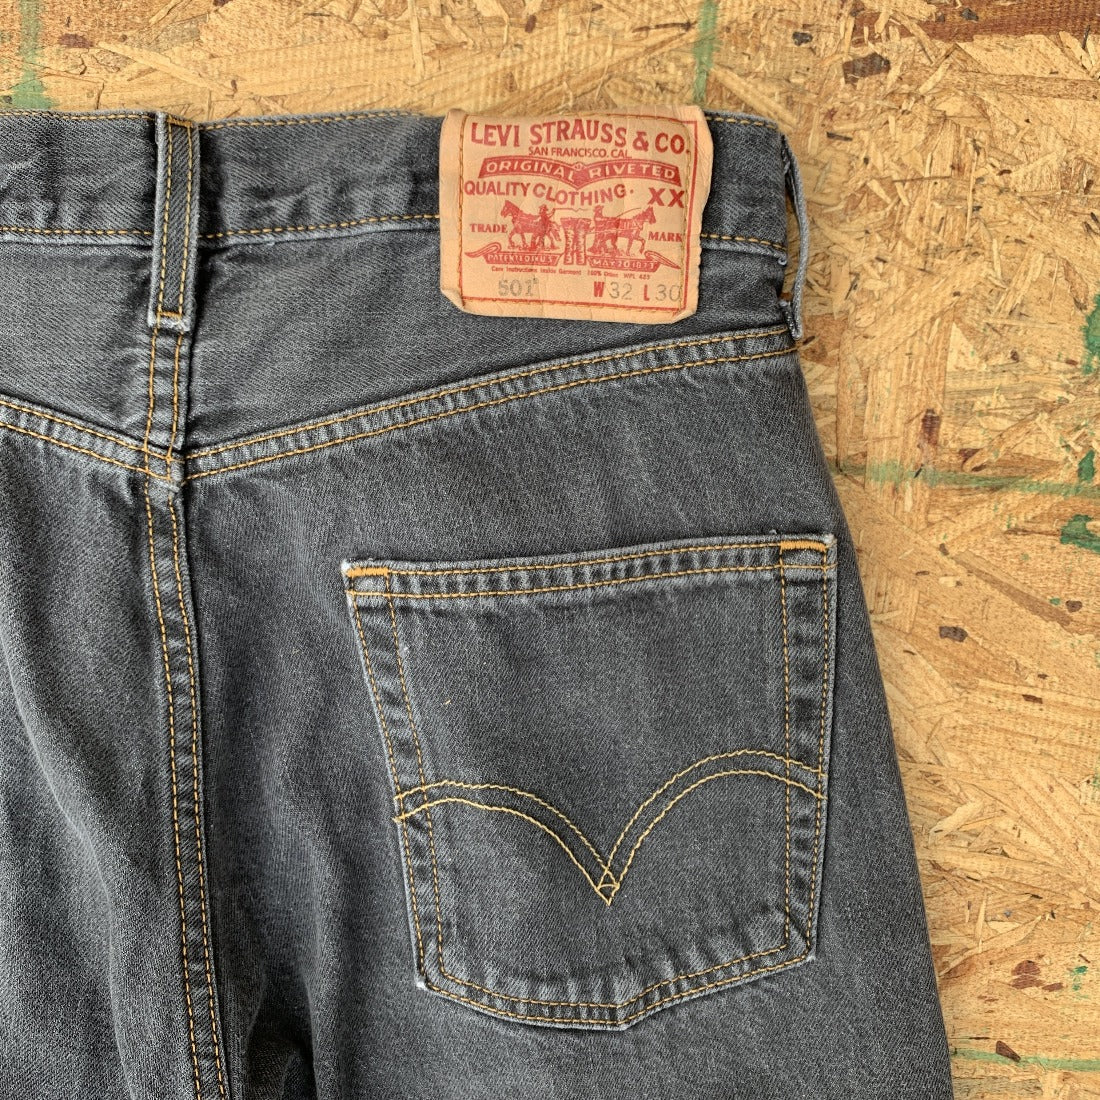 Black 501 Denim Jeans